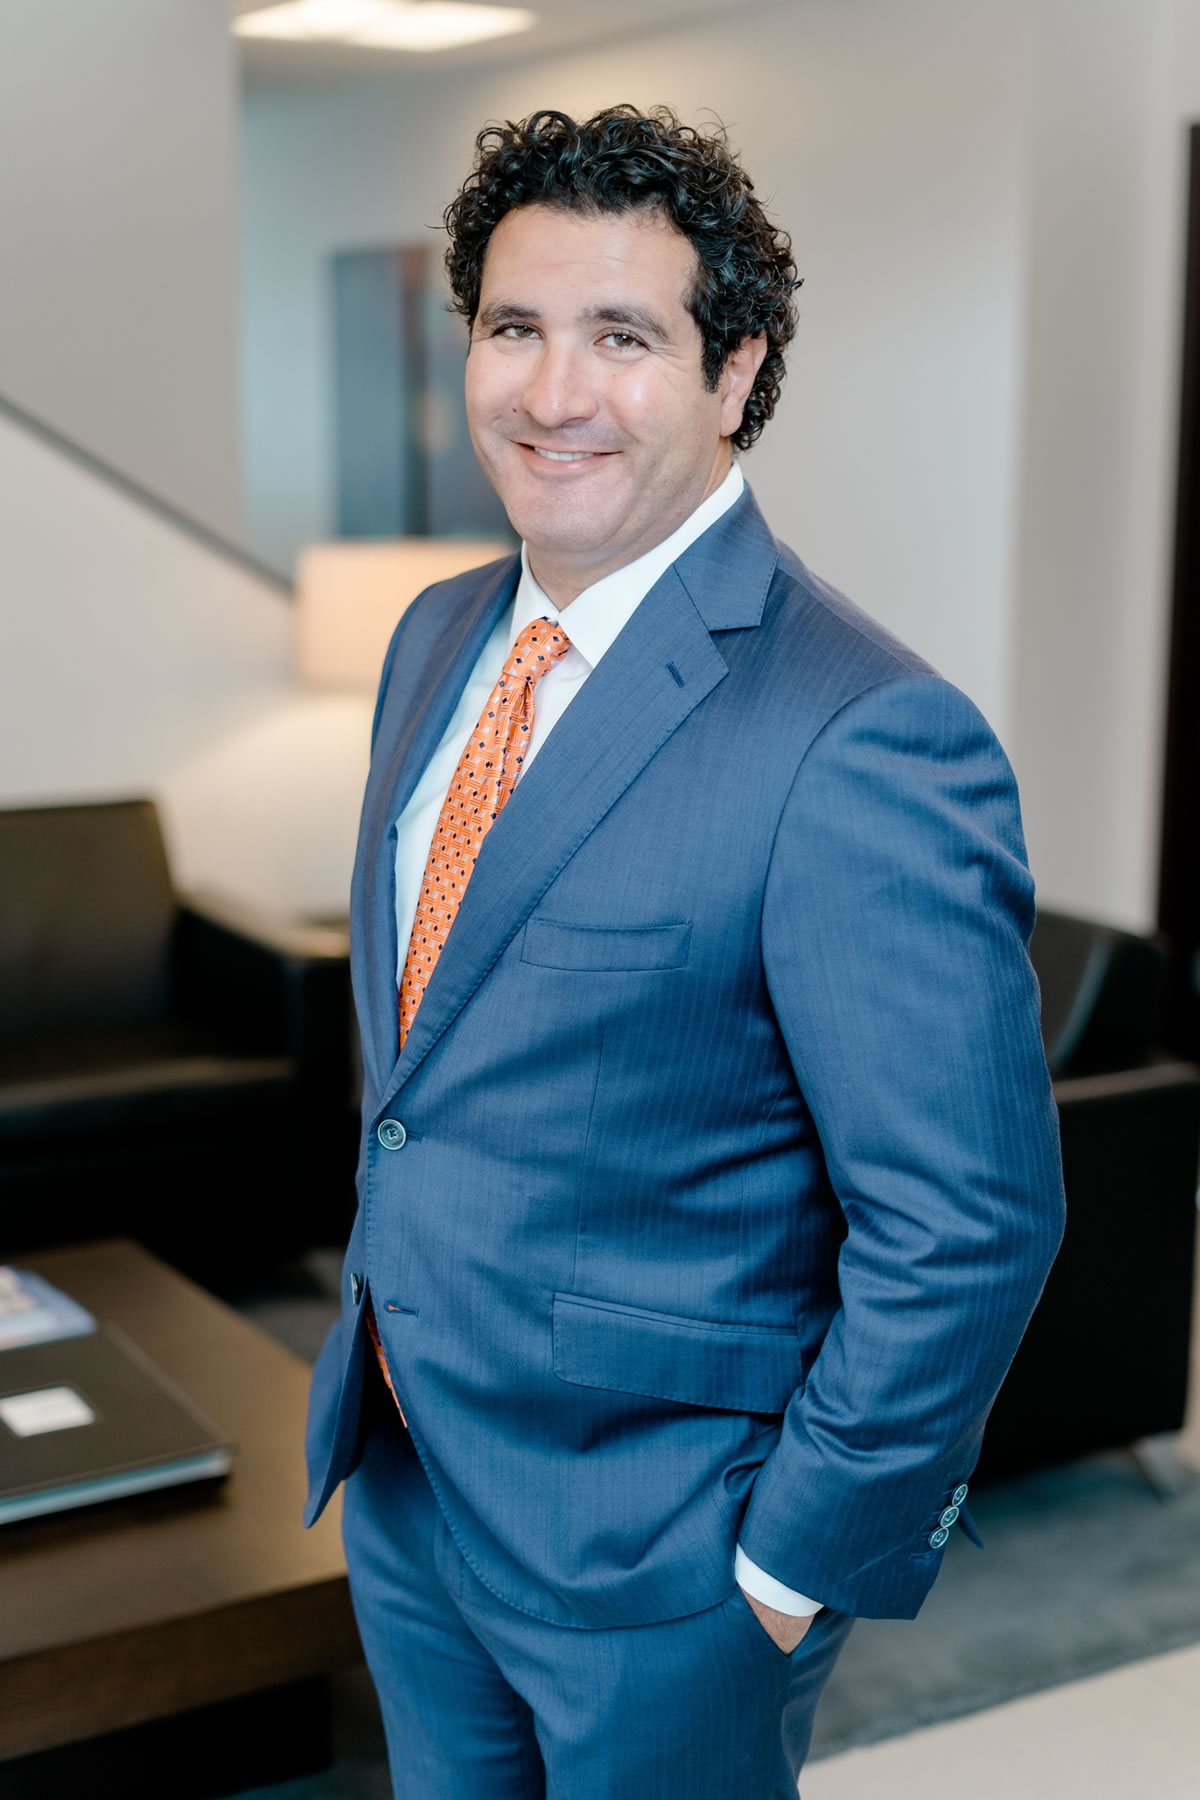 Tony Sos Partner- DWKMRS Law firm orlando